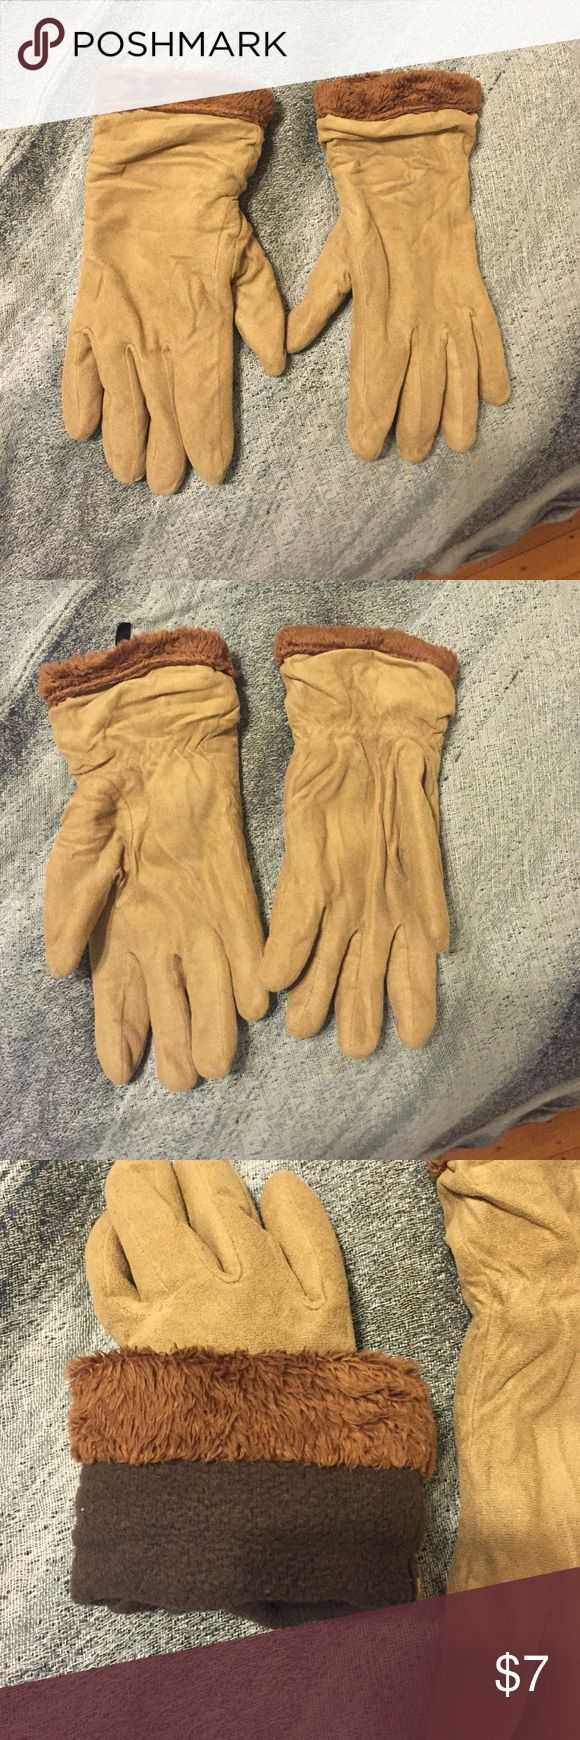 Uniqlo beige gloves. Lightly used. Cozy! Light and dark beige warm gloves. Cozy! Uniqlo Other